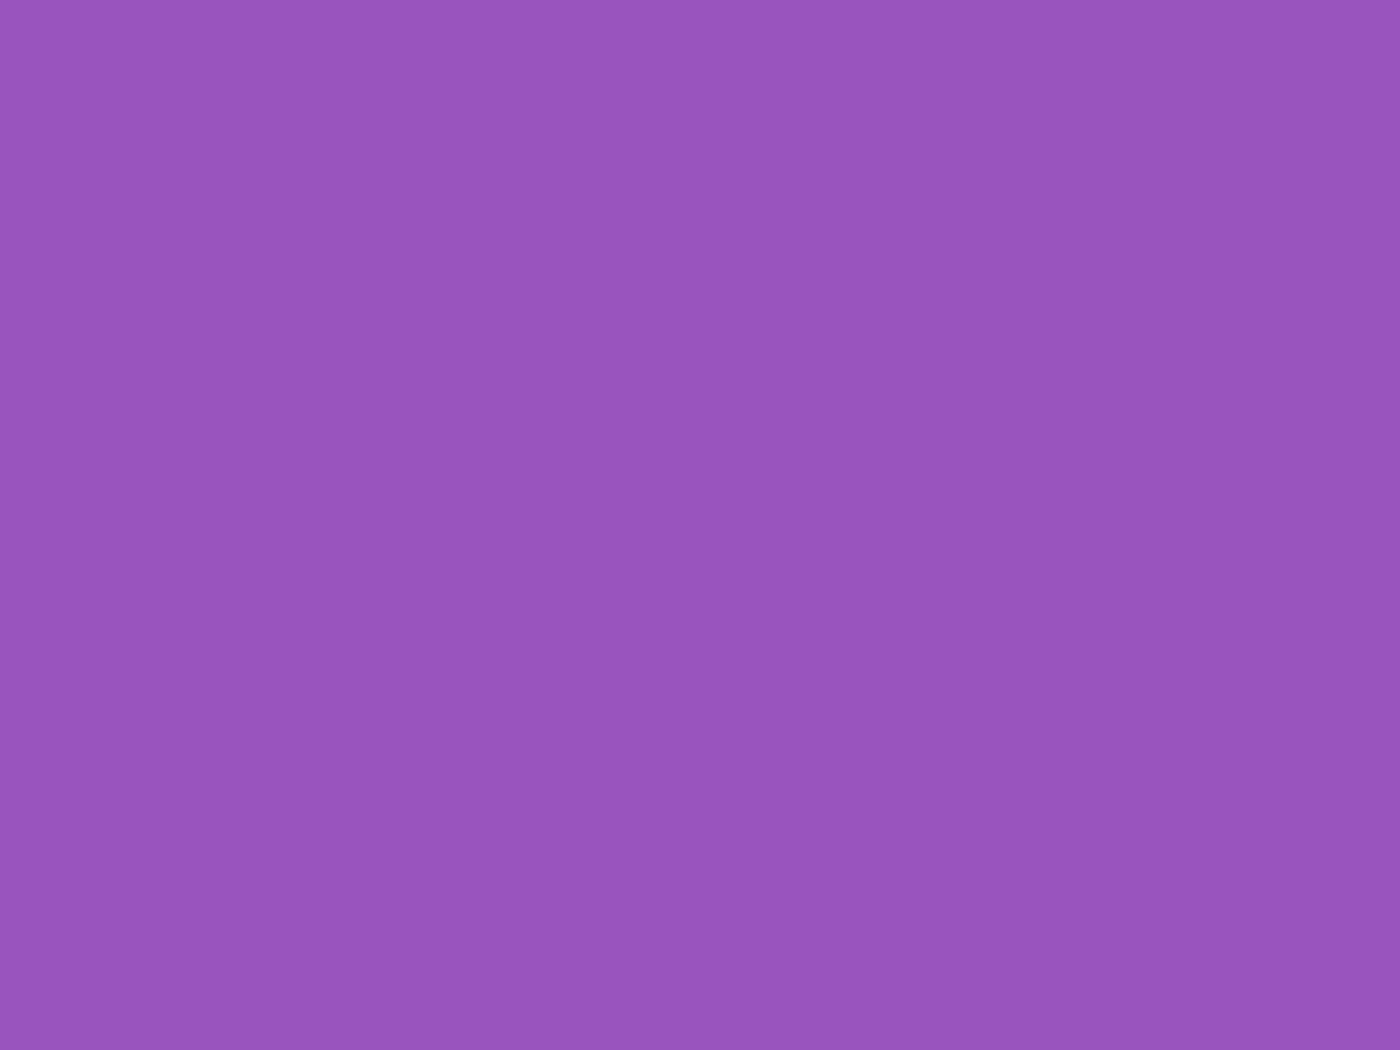 1400x1050 Deep Lilac Solid Color Background